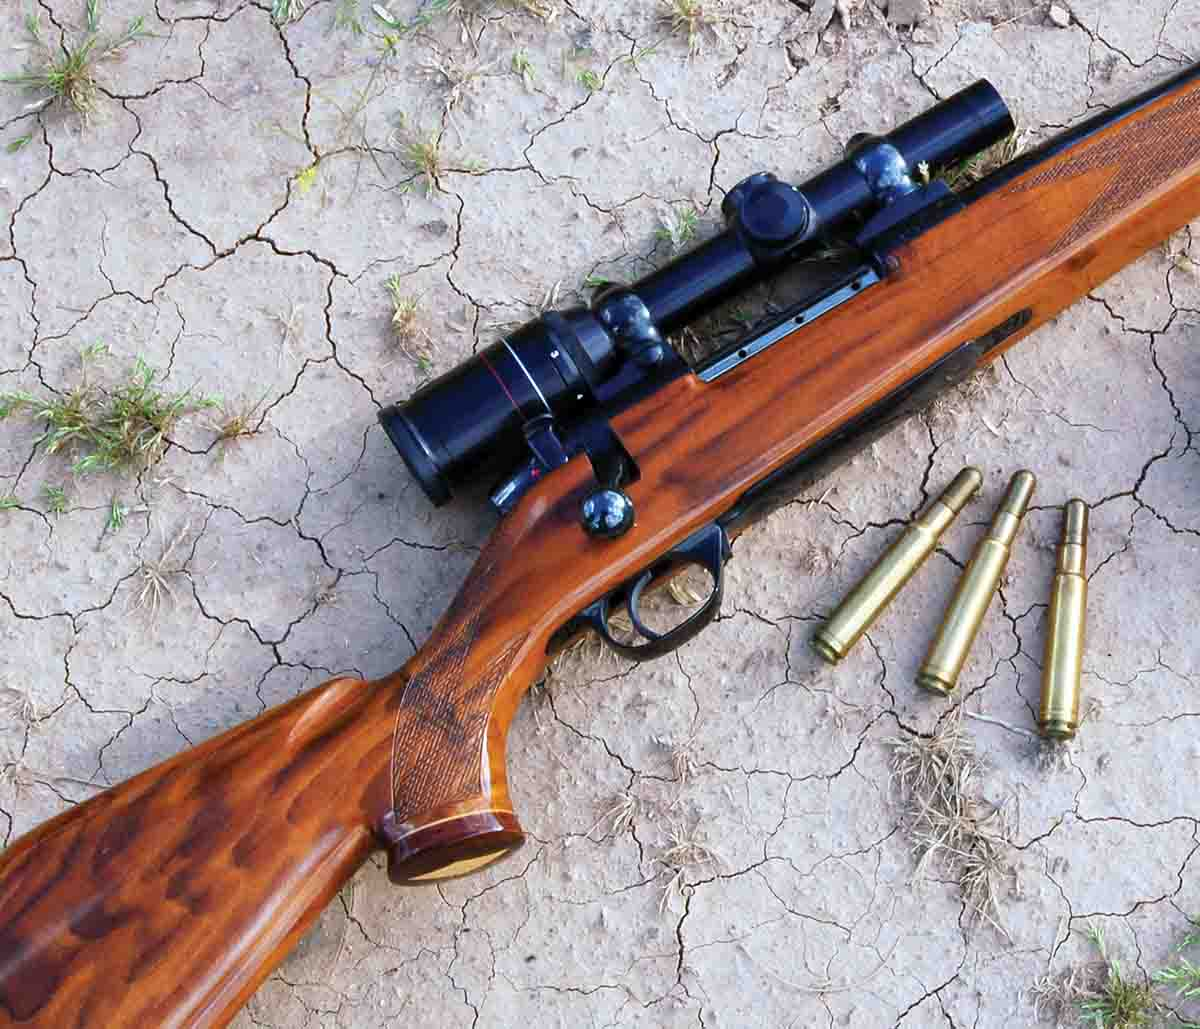 The .416 Weatherby Magnum cartridge was made for large and dangerous game.